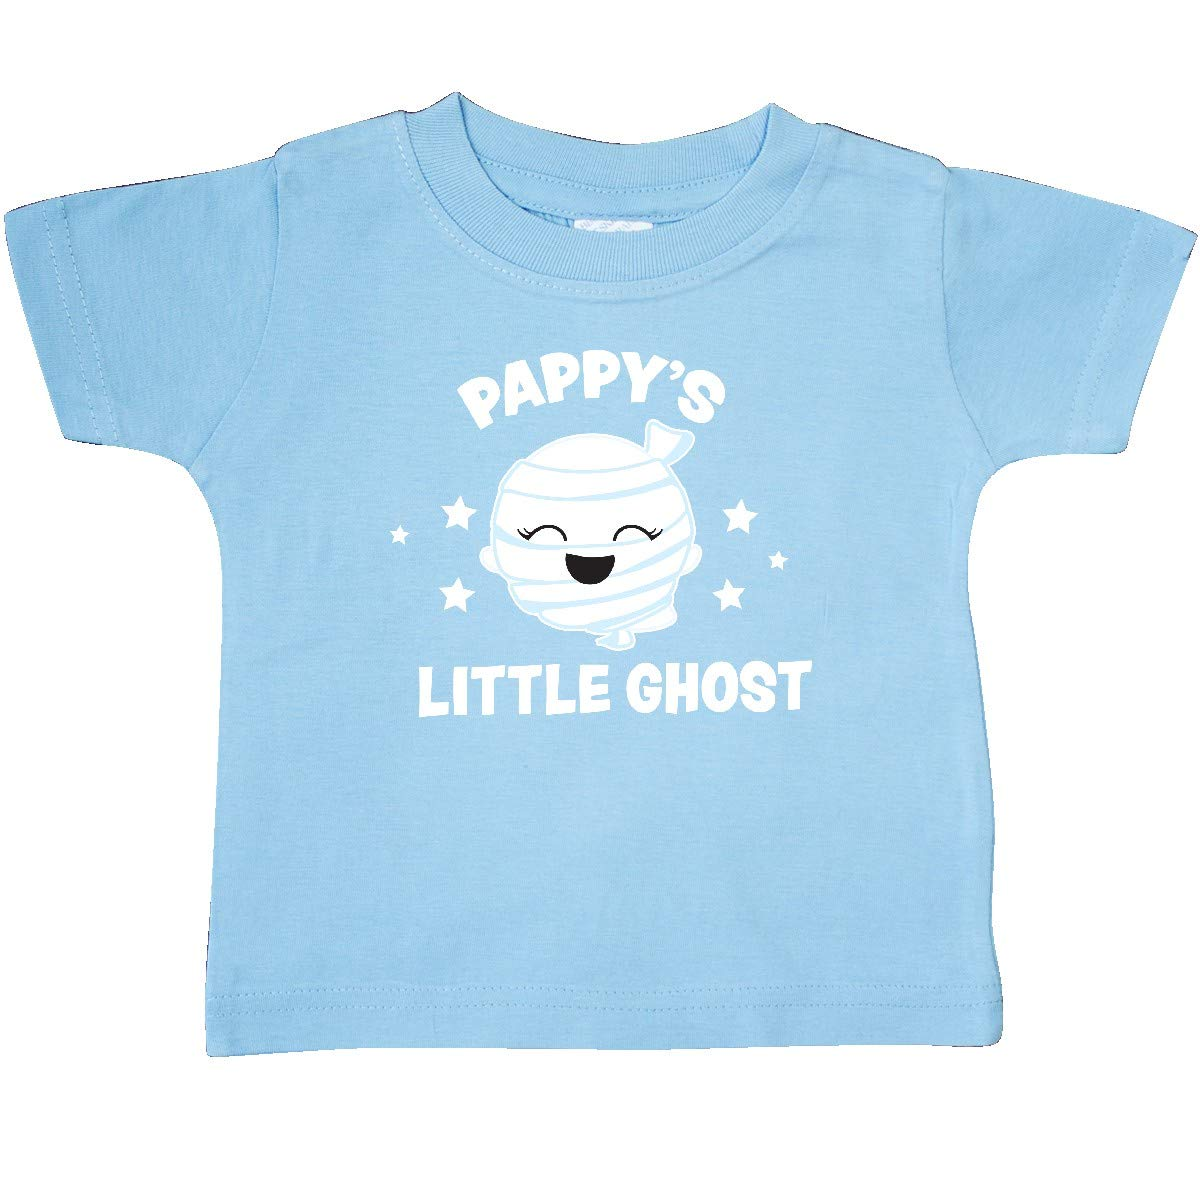 inktastic Cute Pappys Little Ghost with Stars Baby T-Shirt